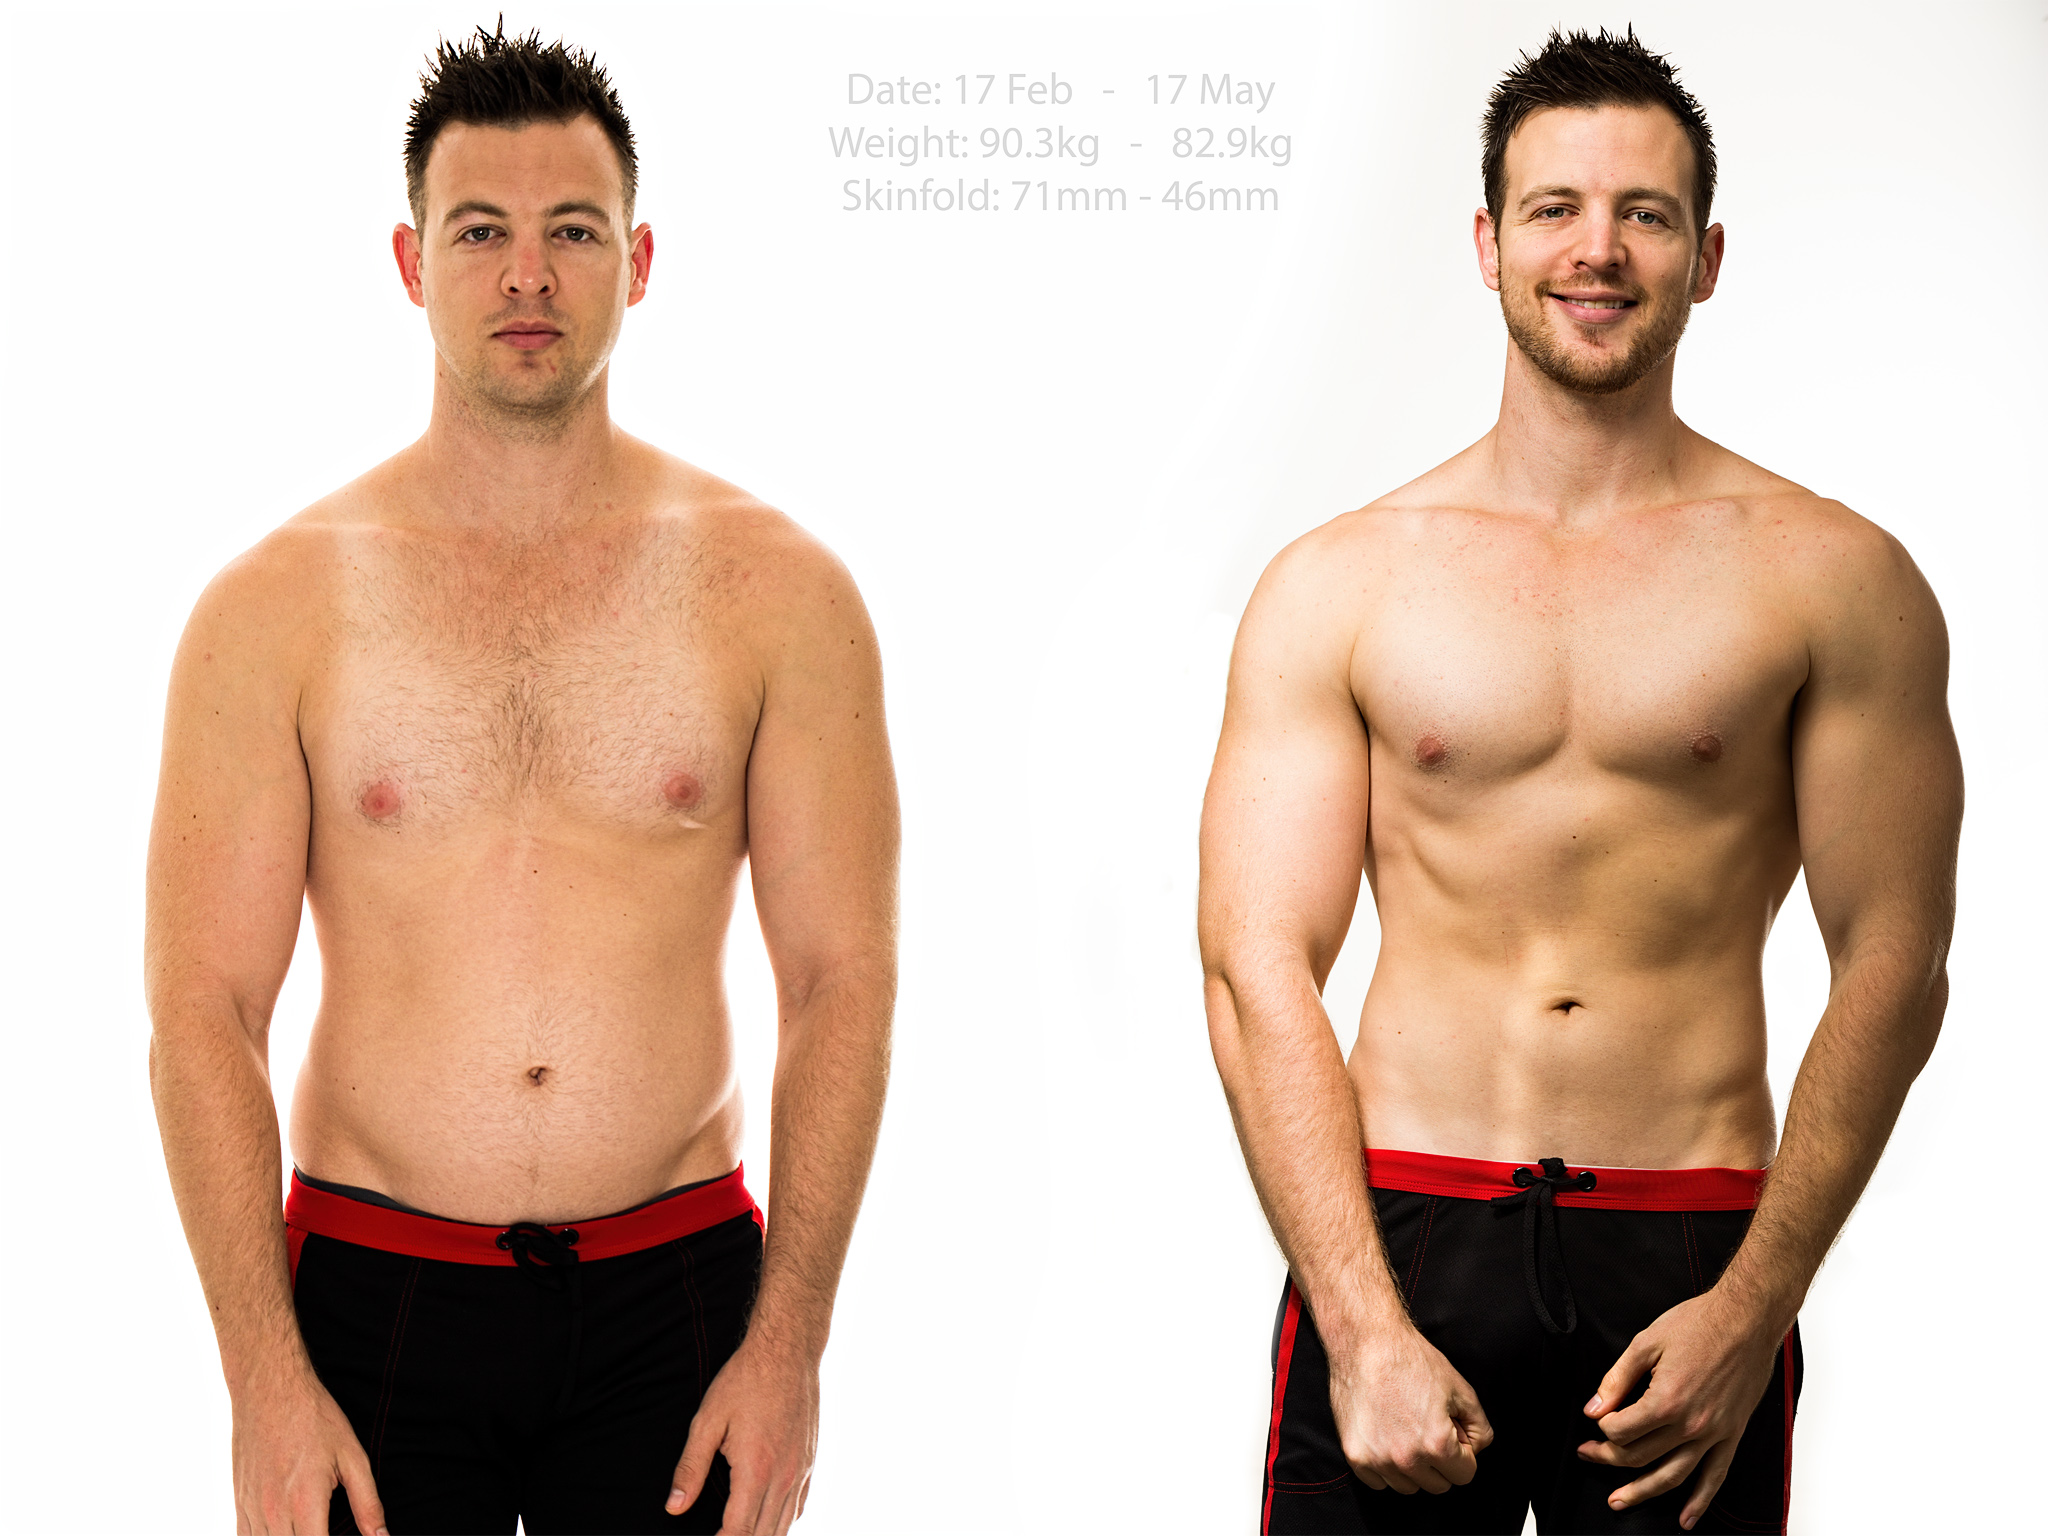 Isaac Insoll 2014 Goodlife 12 Week Challenge Results